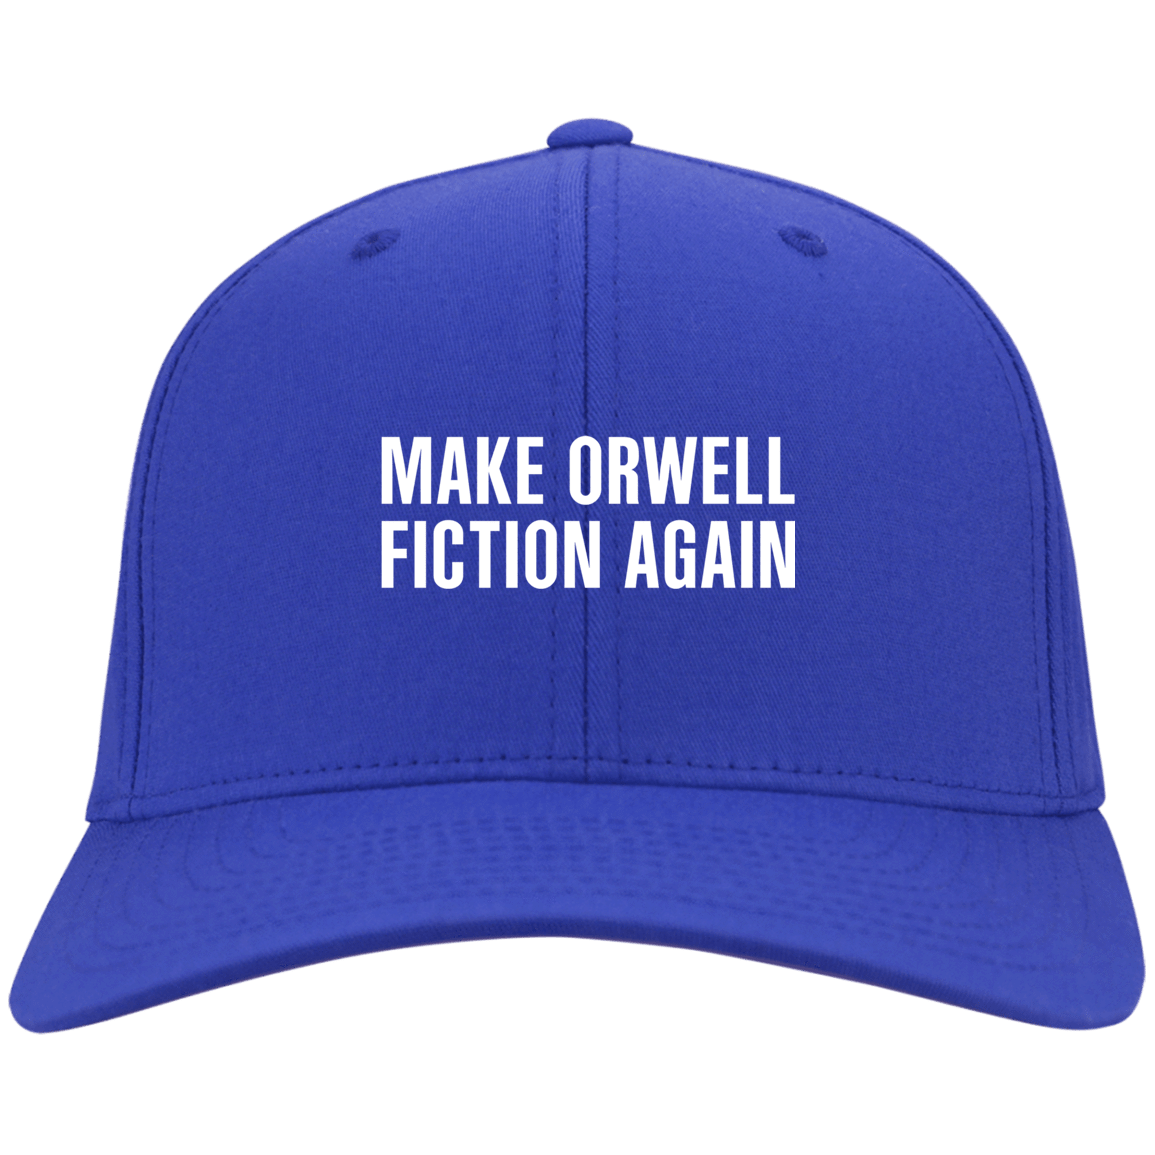 Make Orwell Fiction Again Hat 10-61-74169573-91 - Tee Ript